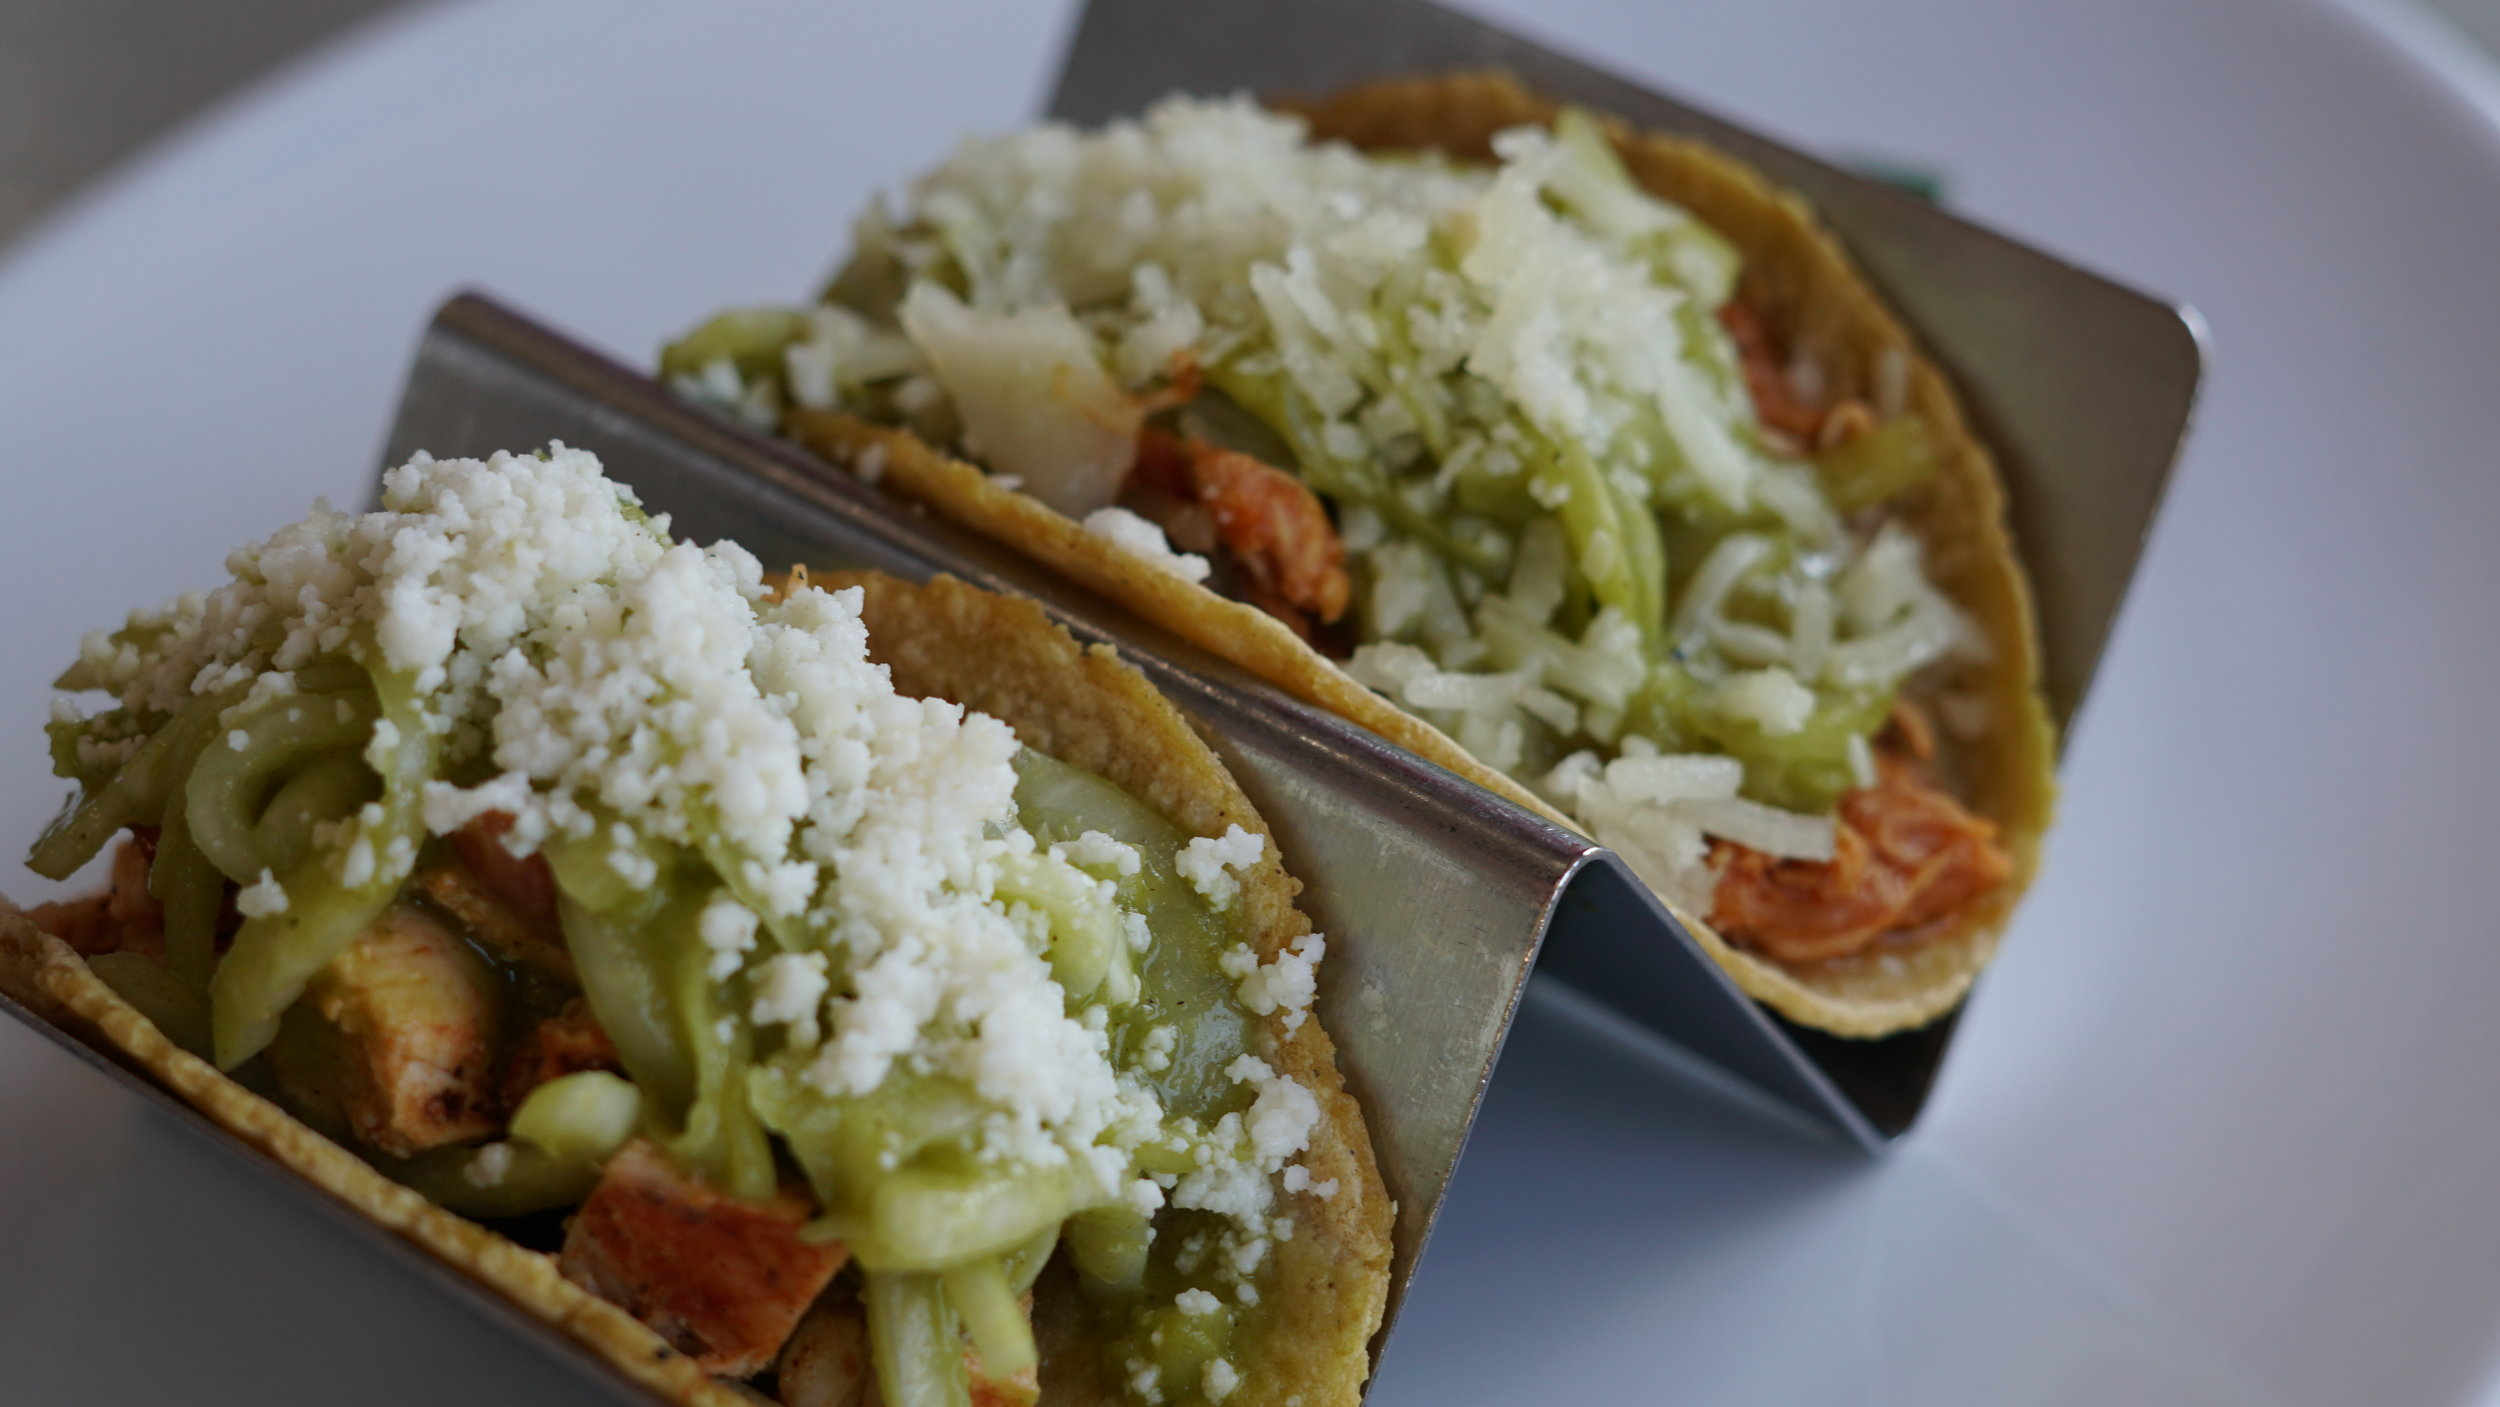 From left: chicken taco and chicken tinga taco, cali green style